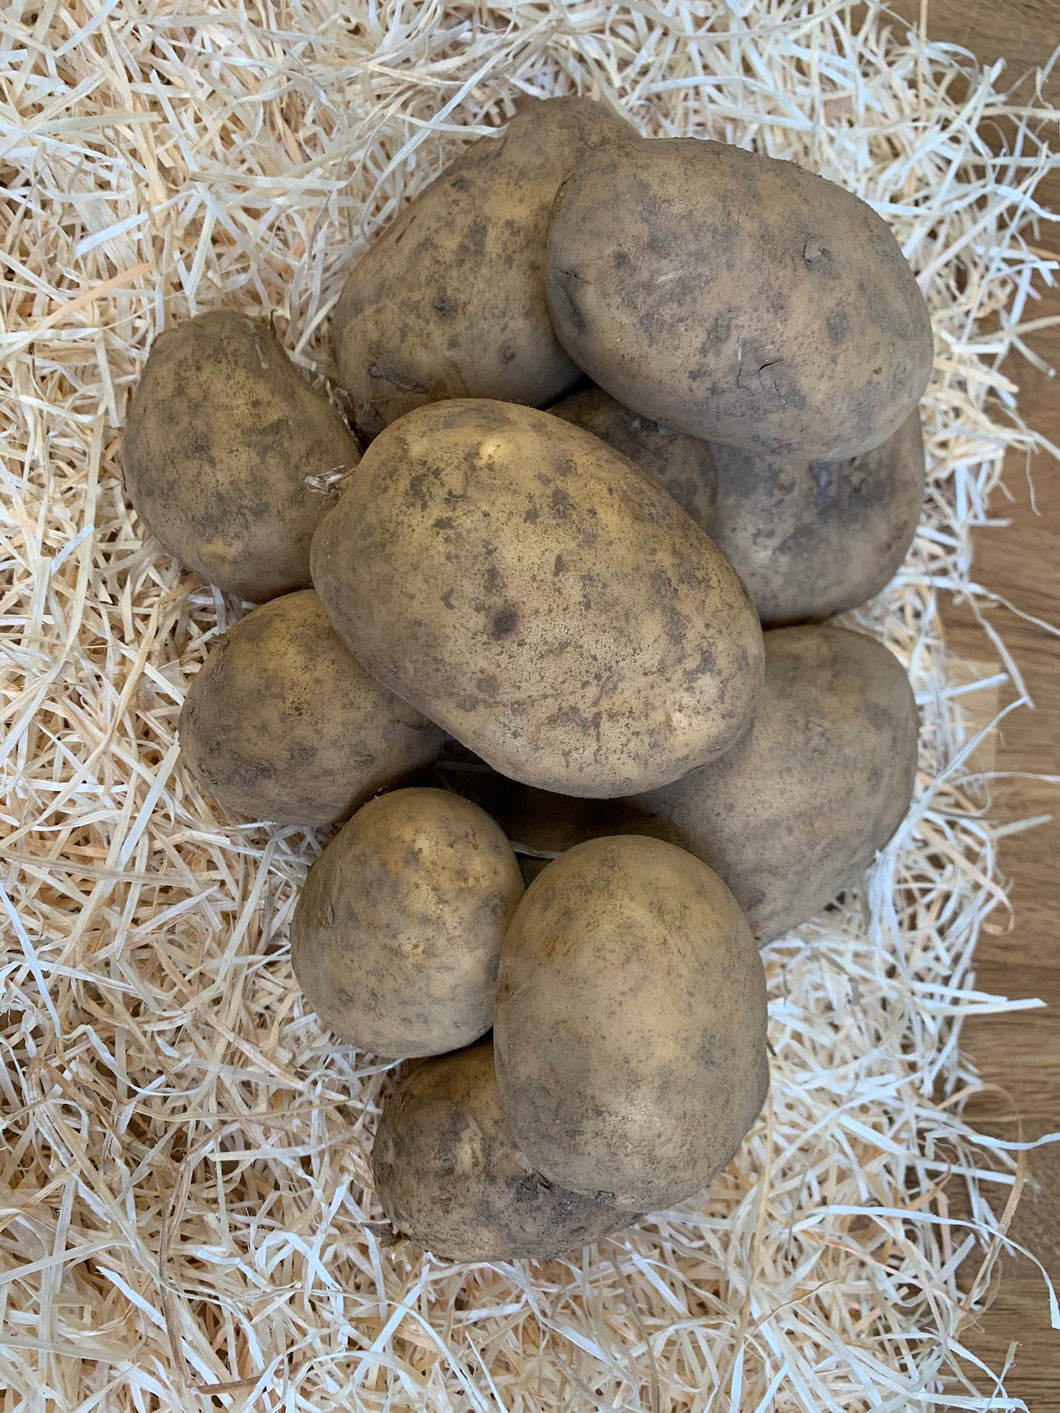 New Season Tatties - Markies - Per kg